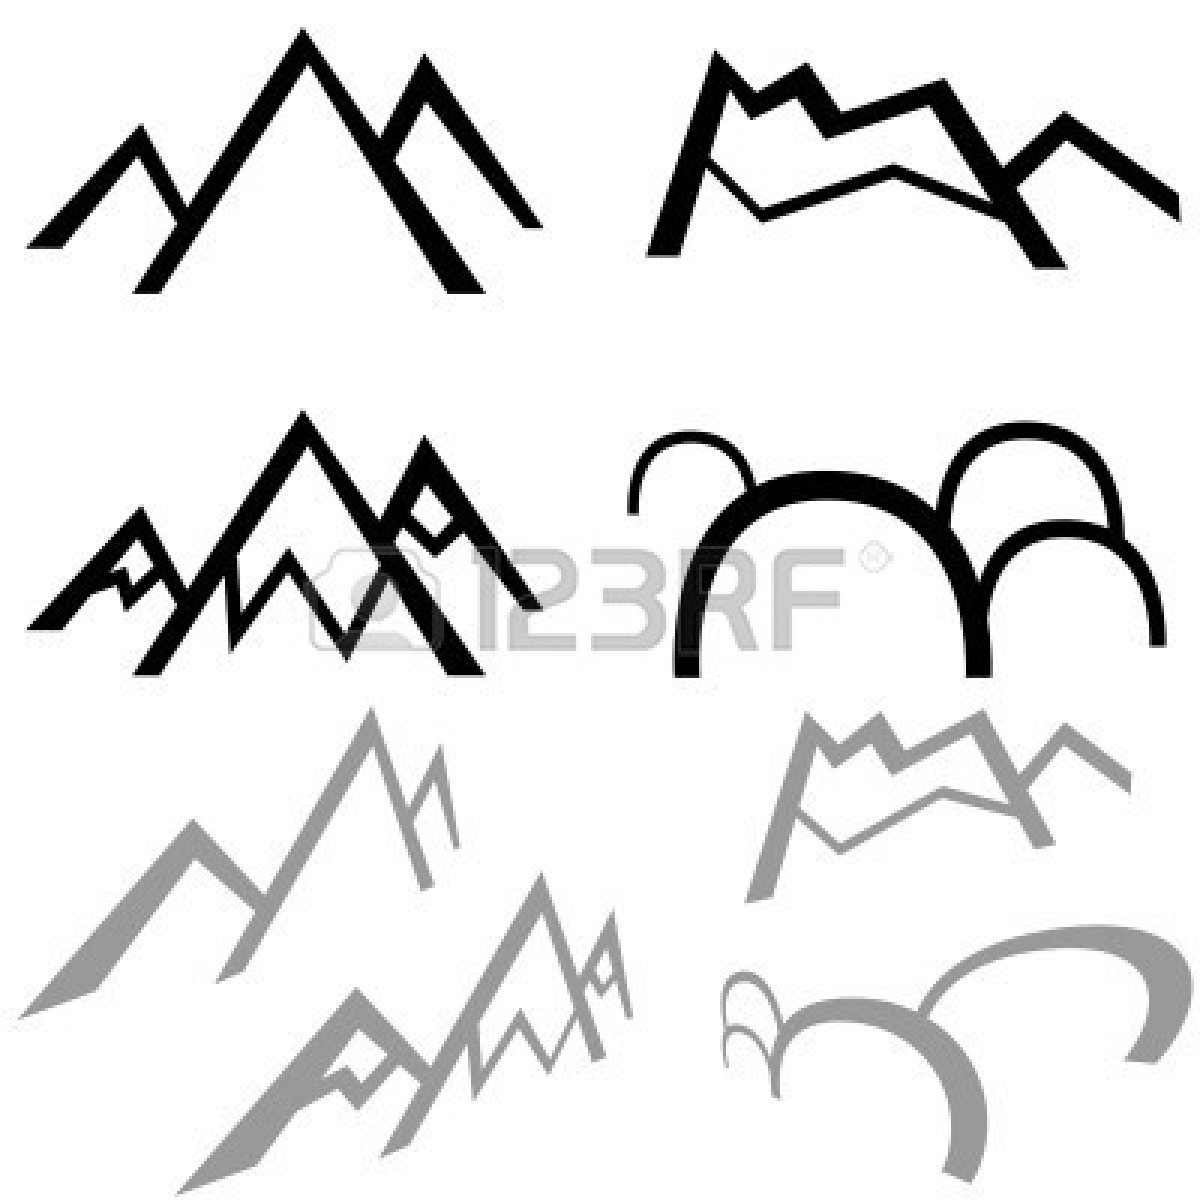 mountain range clip art clipart panda free clipart images rh clipartpanda com mountain range clipart black and white mountain range outline clipart